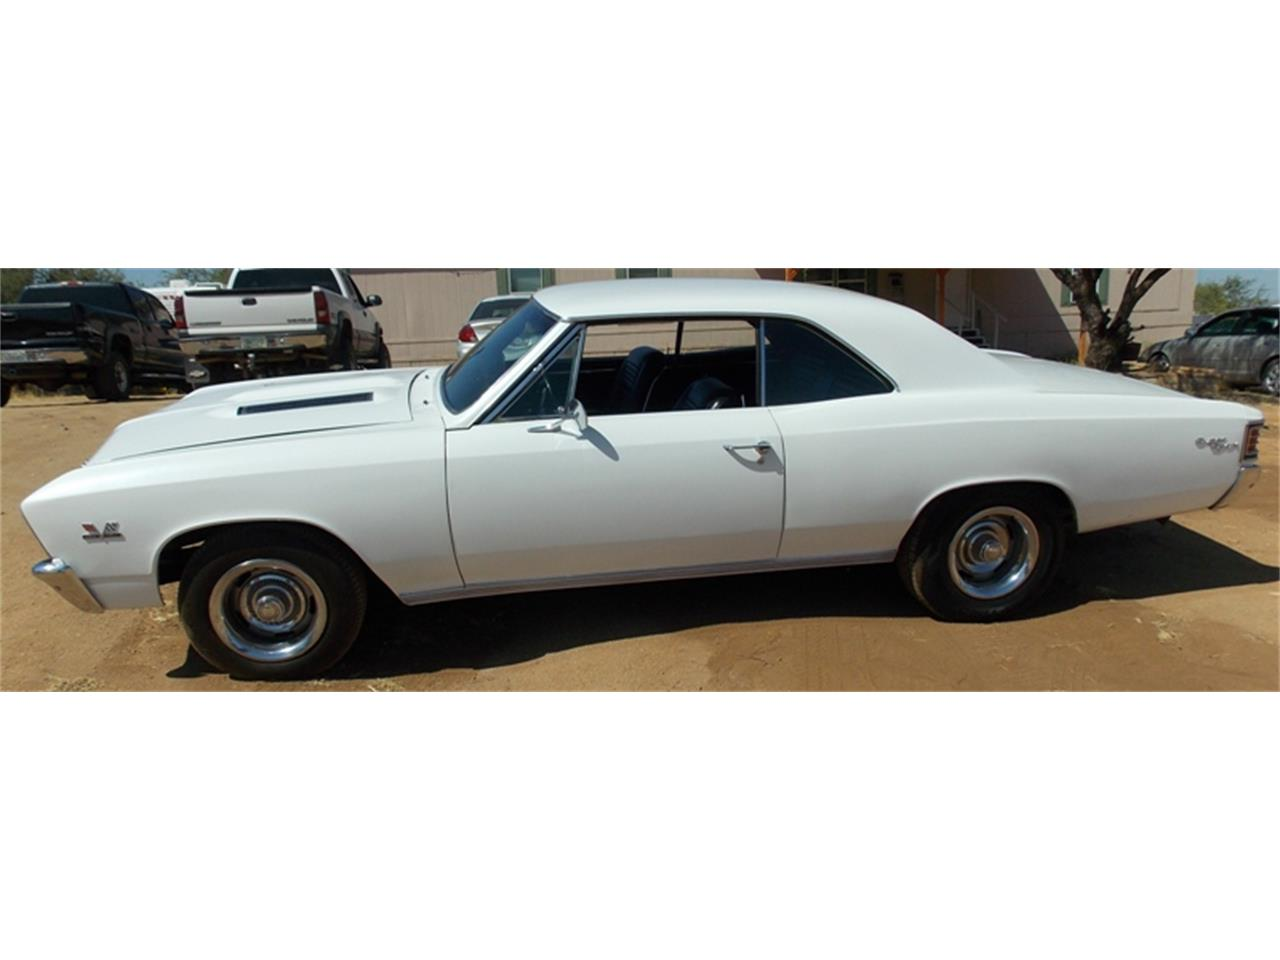 1967 Chevrolet Chevelle SS (CC-1409389) for sale in Tucson, AZ - Arizona